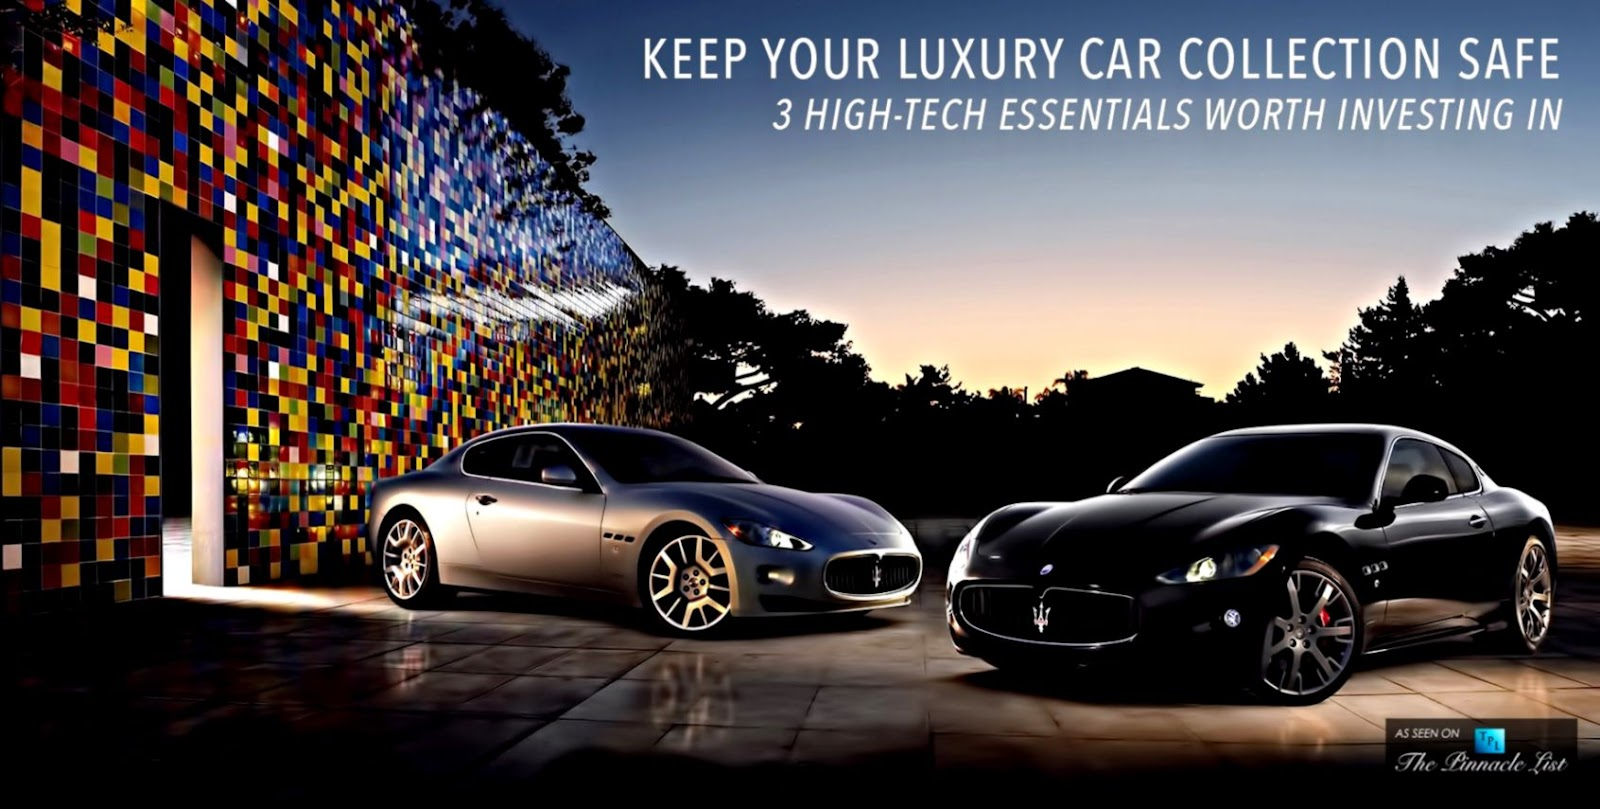 Luxury Cars  The Pinnacle List